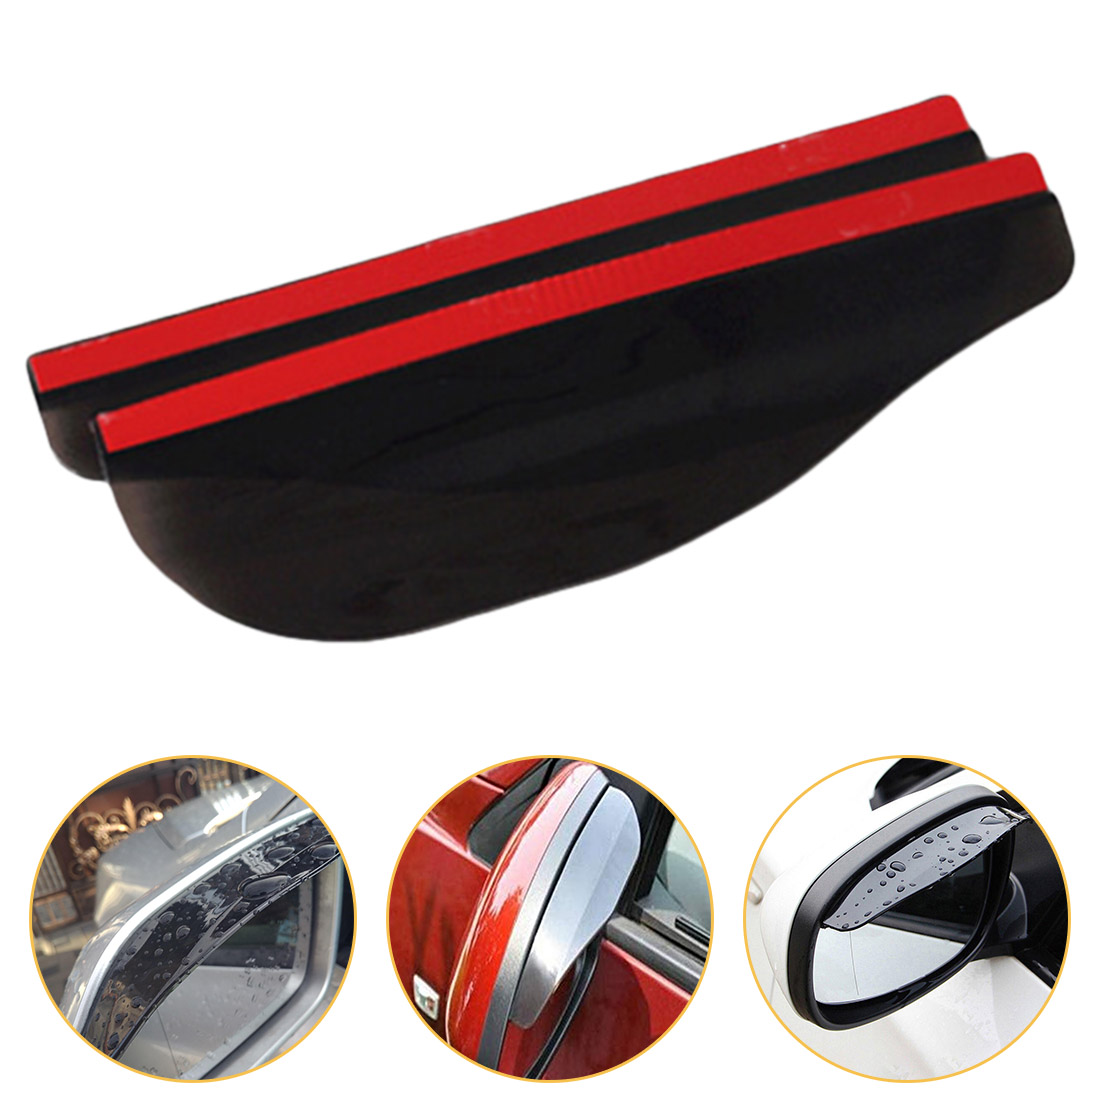 2pcs Flexible Car Rear View Side Mirror Anti Rain Visor Snow Guard Weather Shield Sun Shade Cover Rearview Suv Auto Accessories(China)